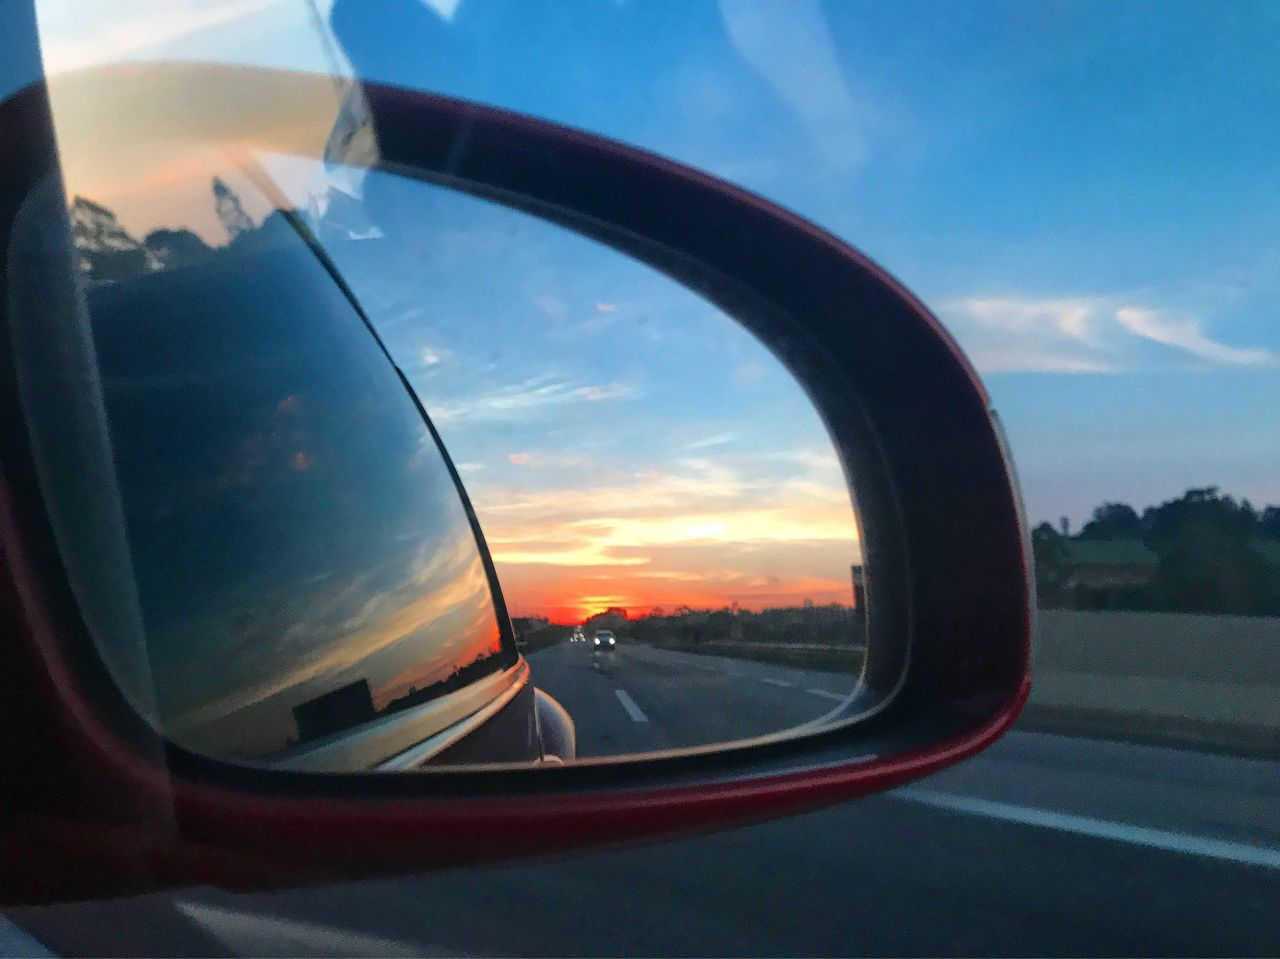 side-view mirror, car, transportation, reflection, sky, land vehicle, mode of transport, vehicle mirror, sunset, cloud - sky, road, mirror, window, road trip, no people, outdoors, close-up, nature, day